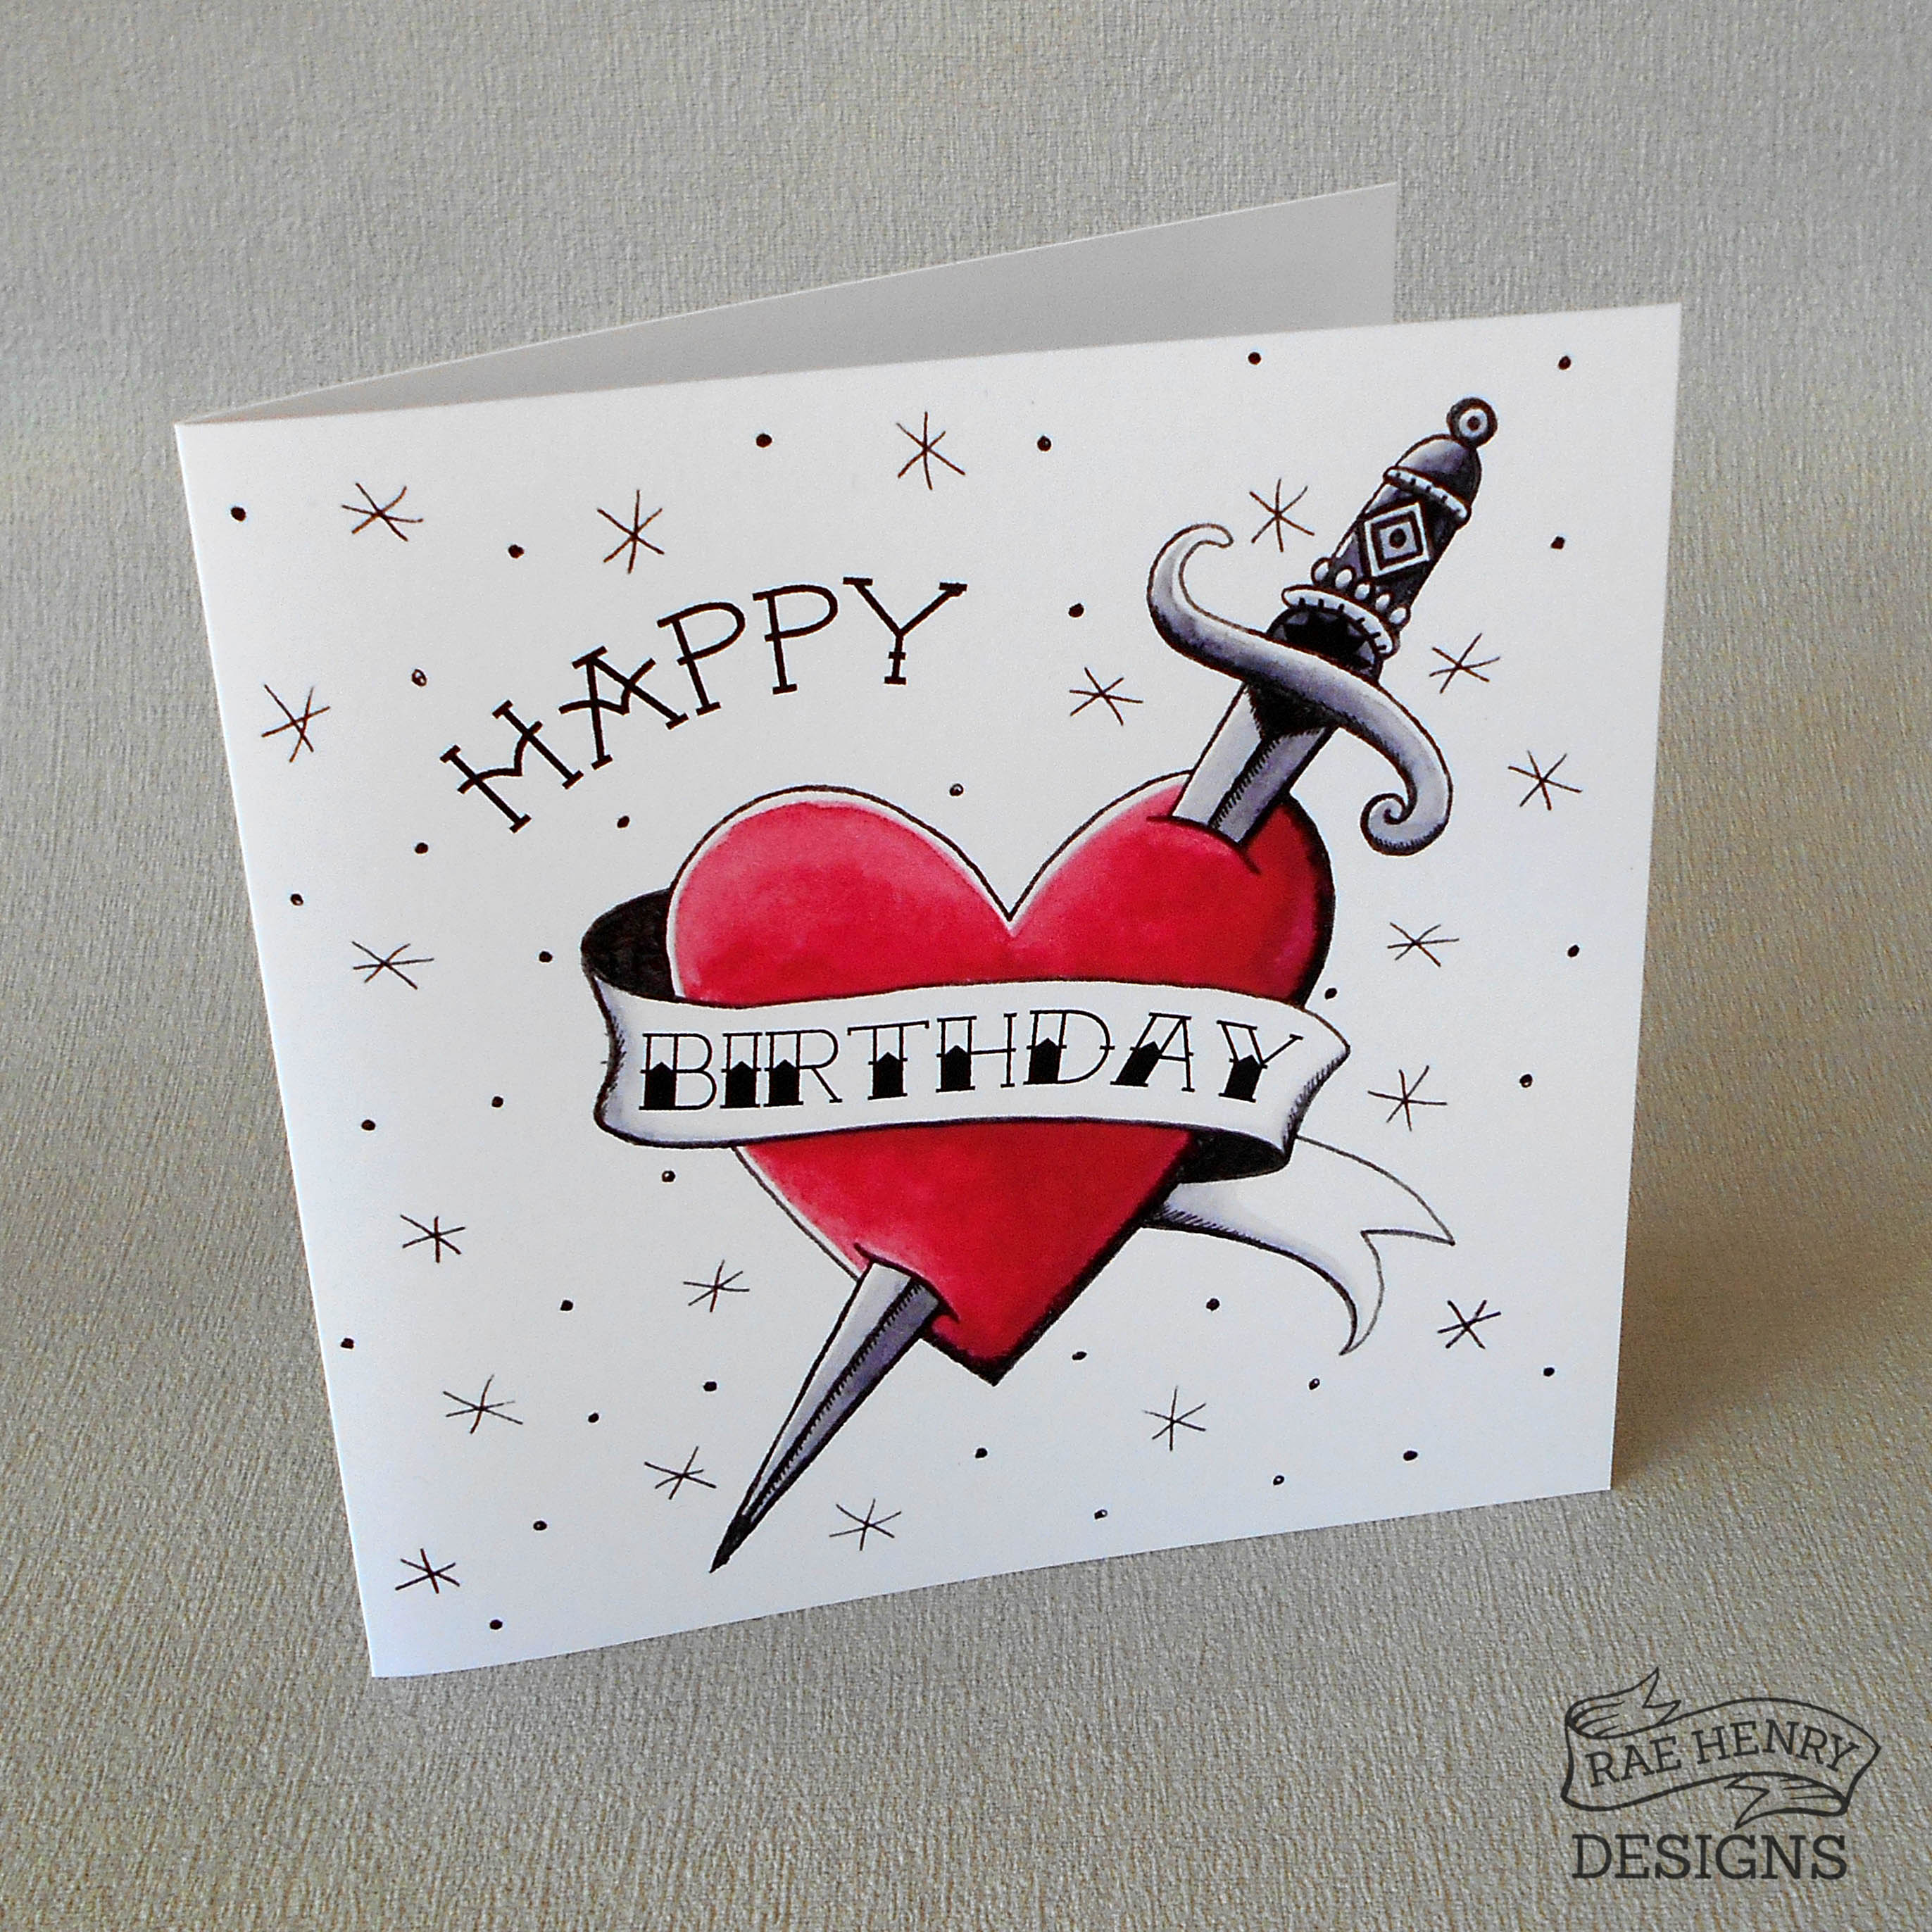 tattoo flash birthday cardrae henry designs shop, Birthday card